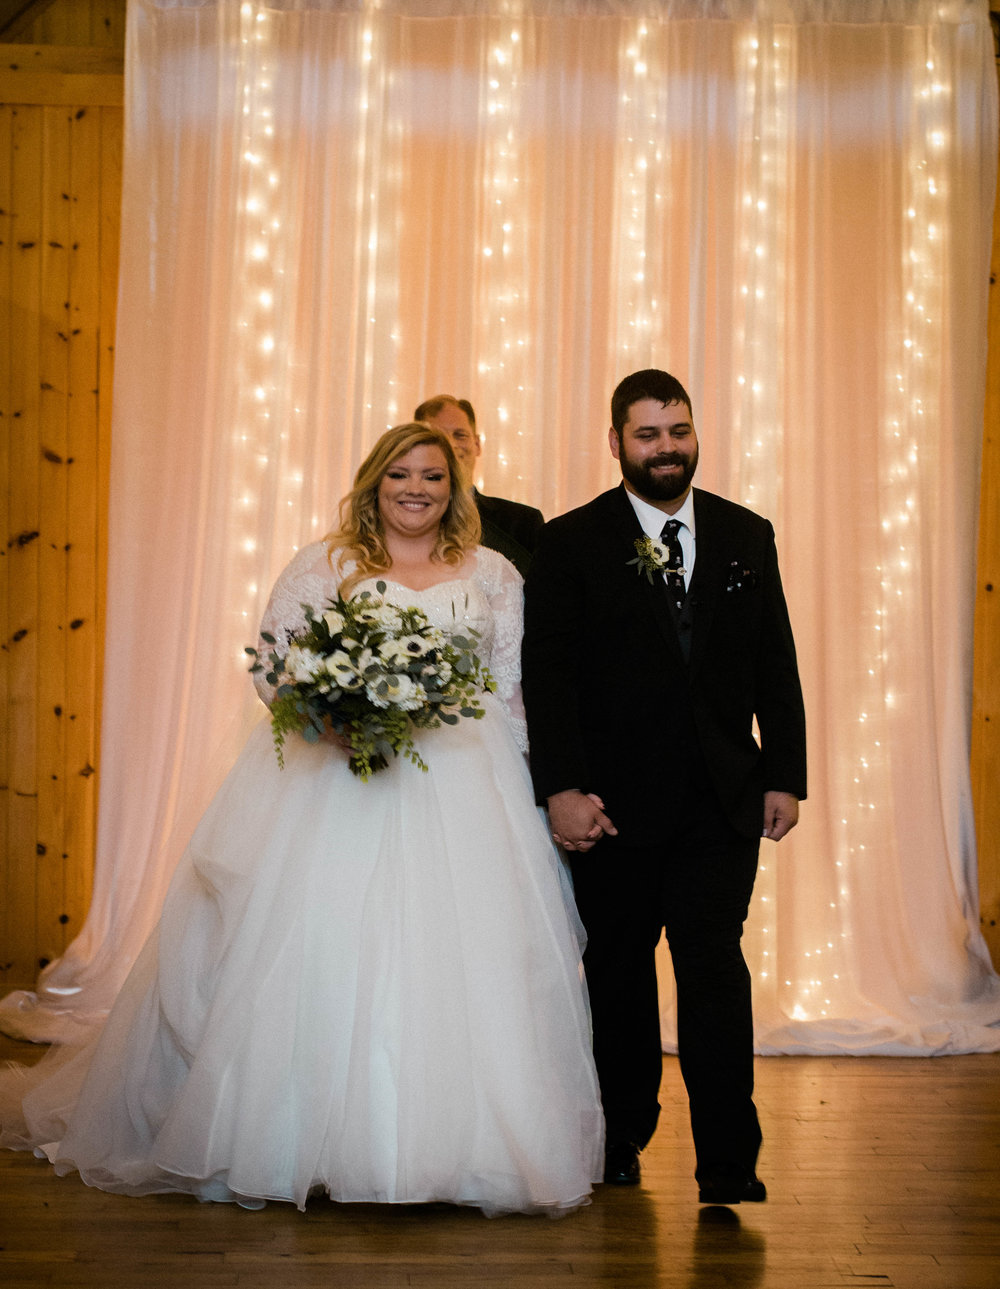 bride and groom married barn ceremony photo